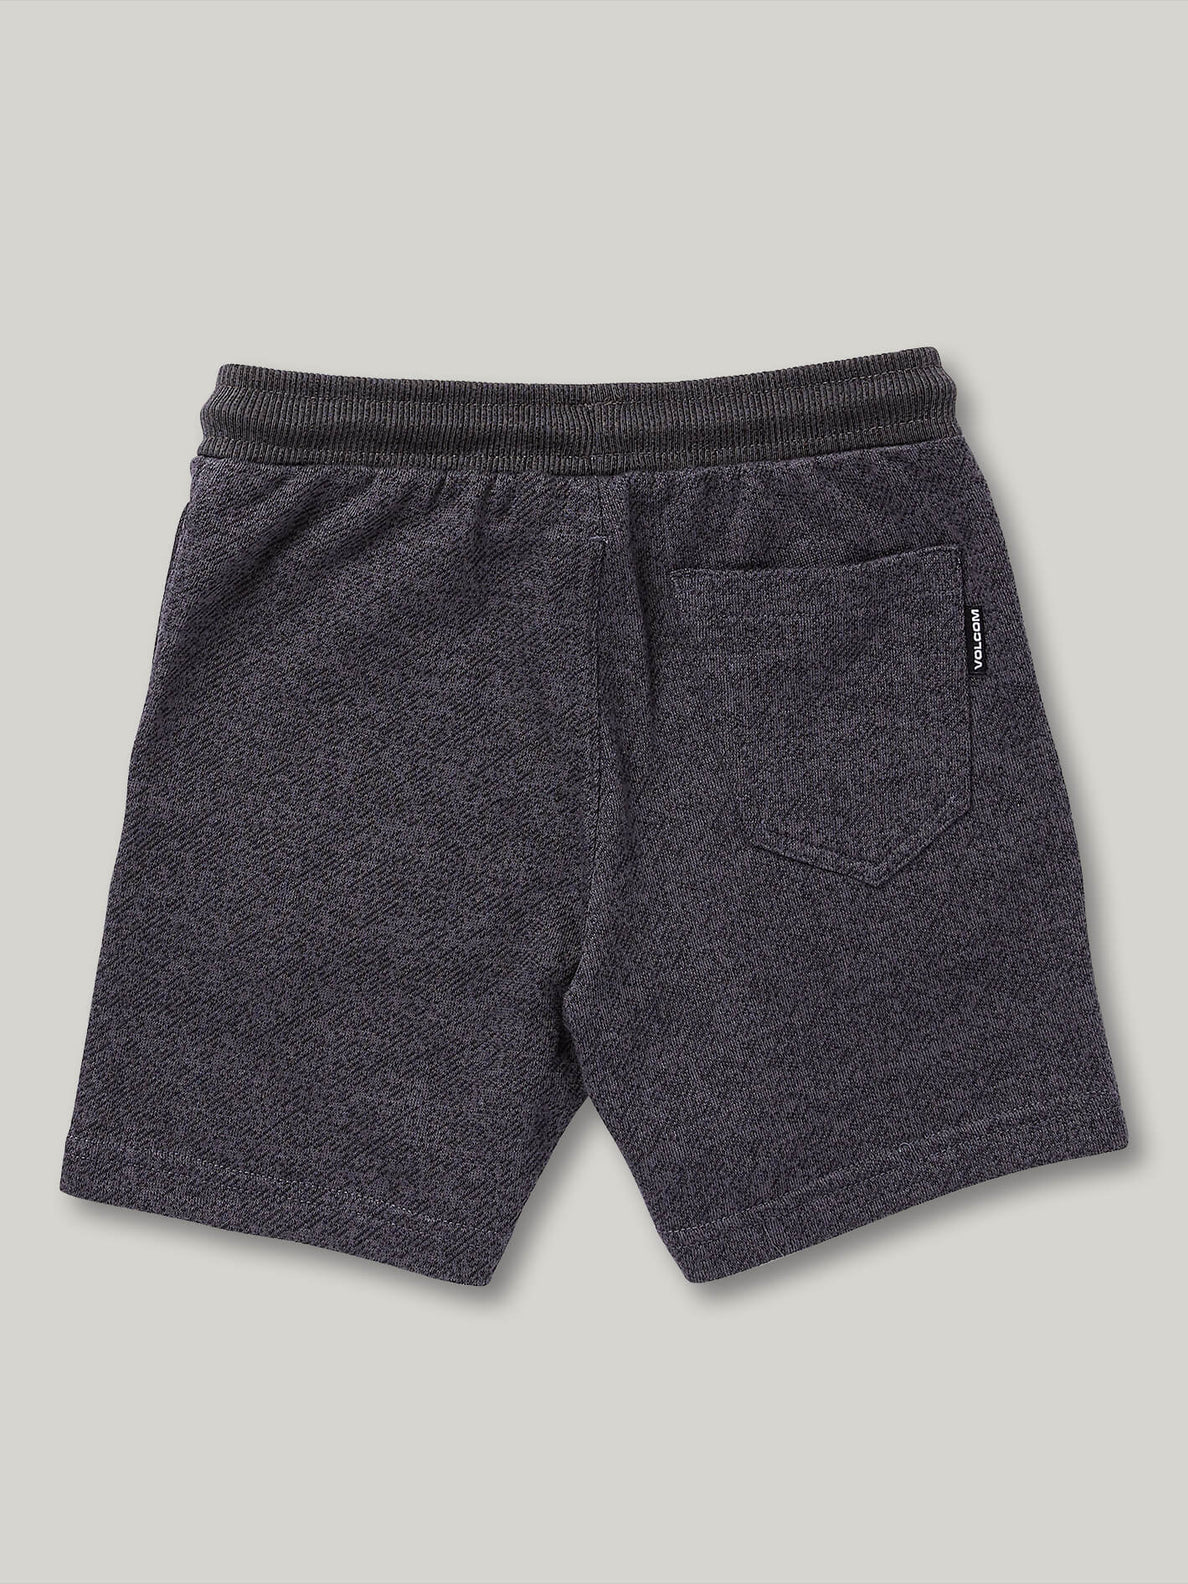 Little Boys Neven Shorts - Black (Y1022001_BLK) [B]